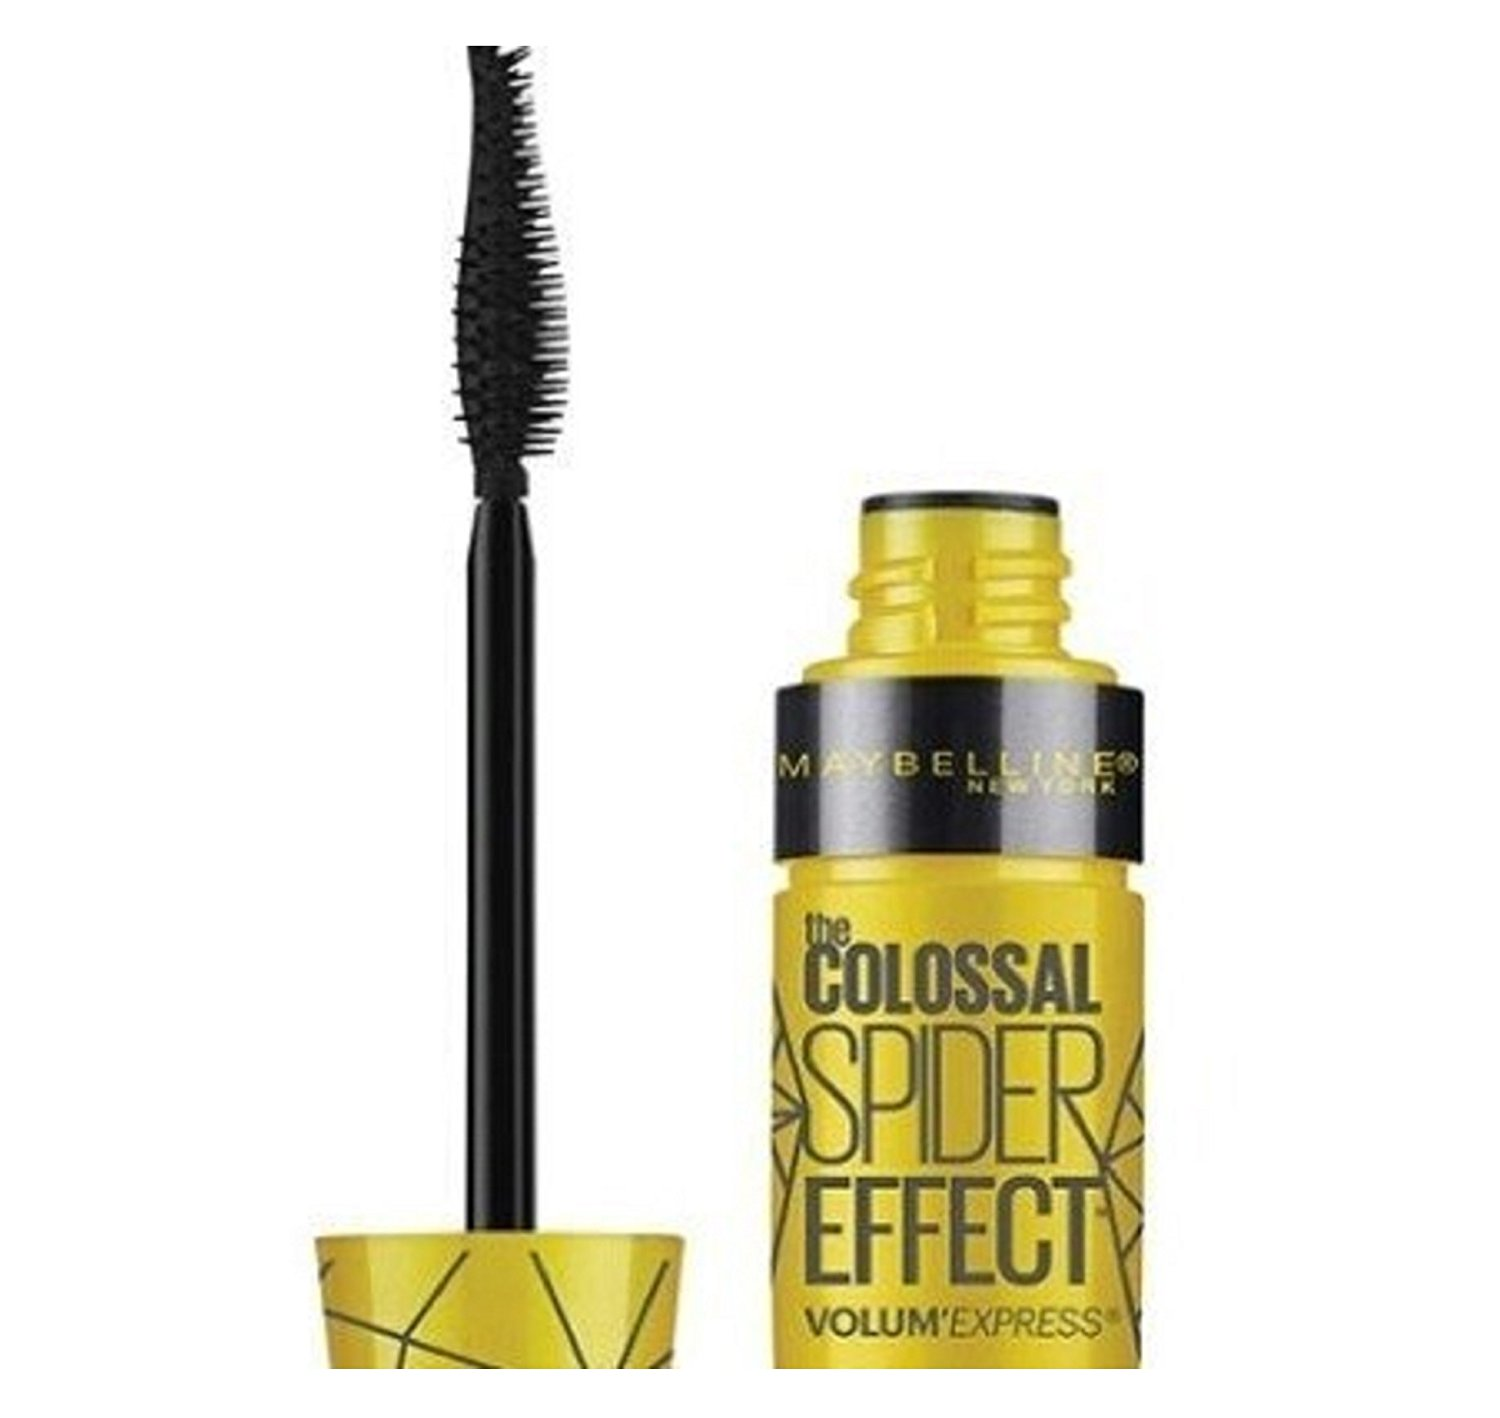 9aa11b4eb0a Get Quotations · Maybelline Volum' Express The Colossal Spider Effect  Waterproof Mascara, 222 Classic Black (Pack